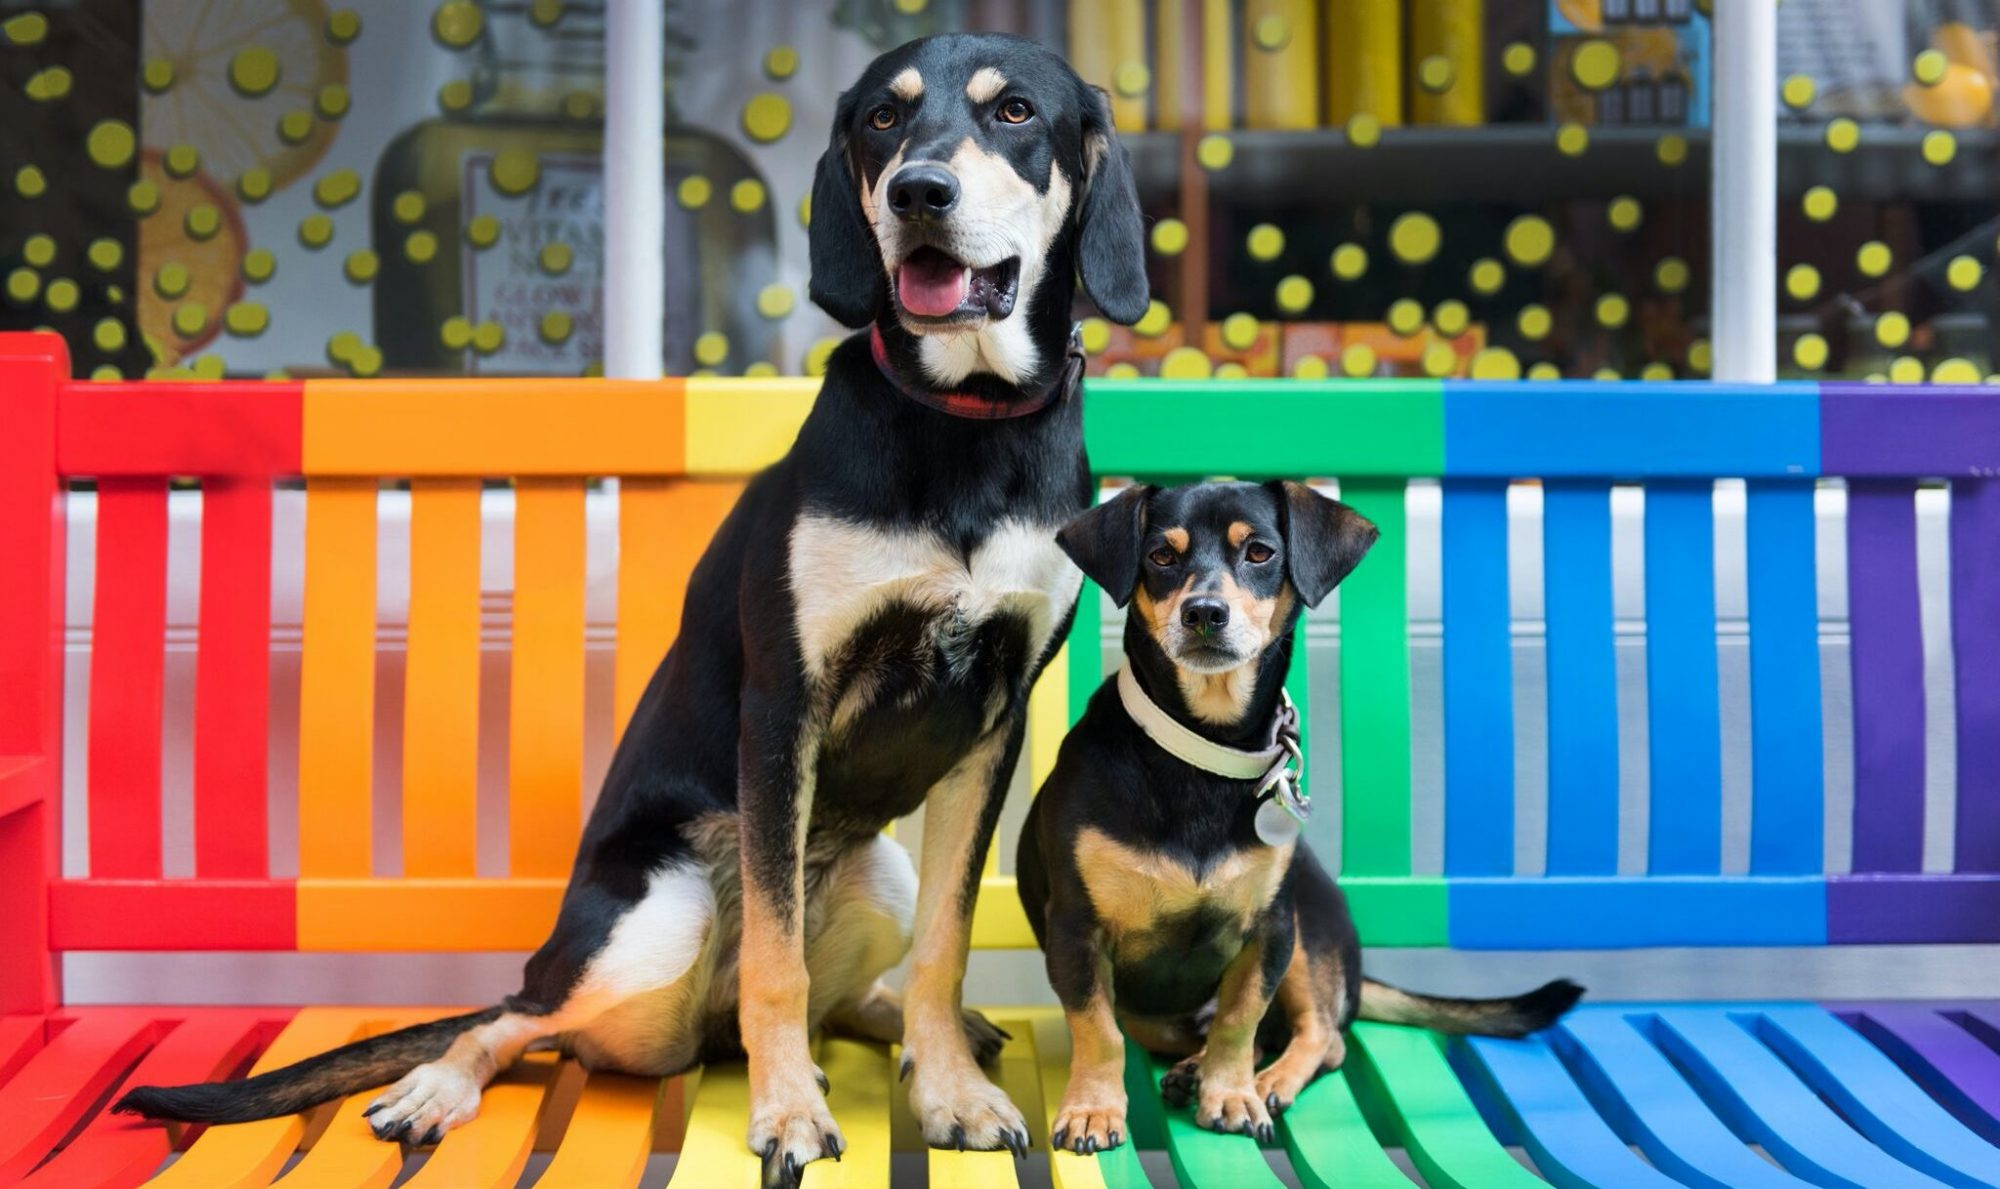 Adopt a dog from abroad and promote overseas dog rescue